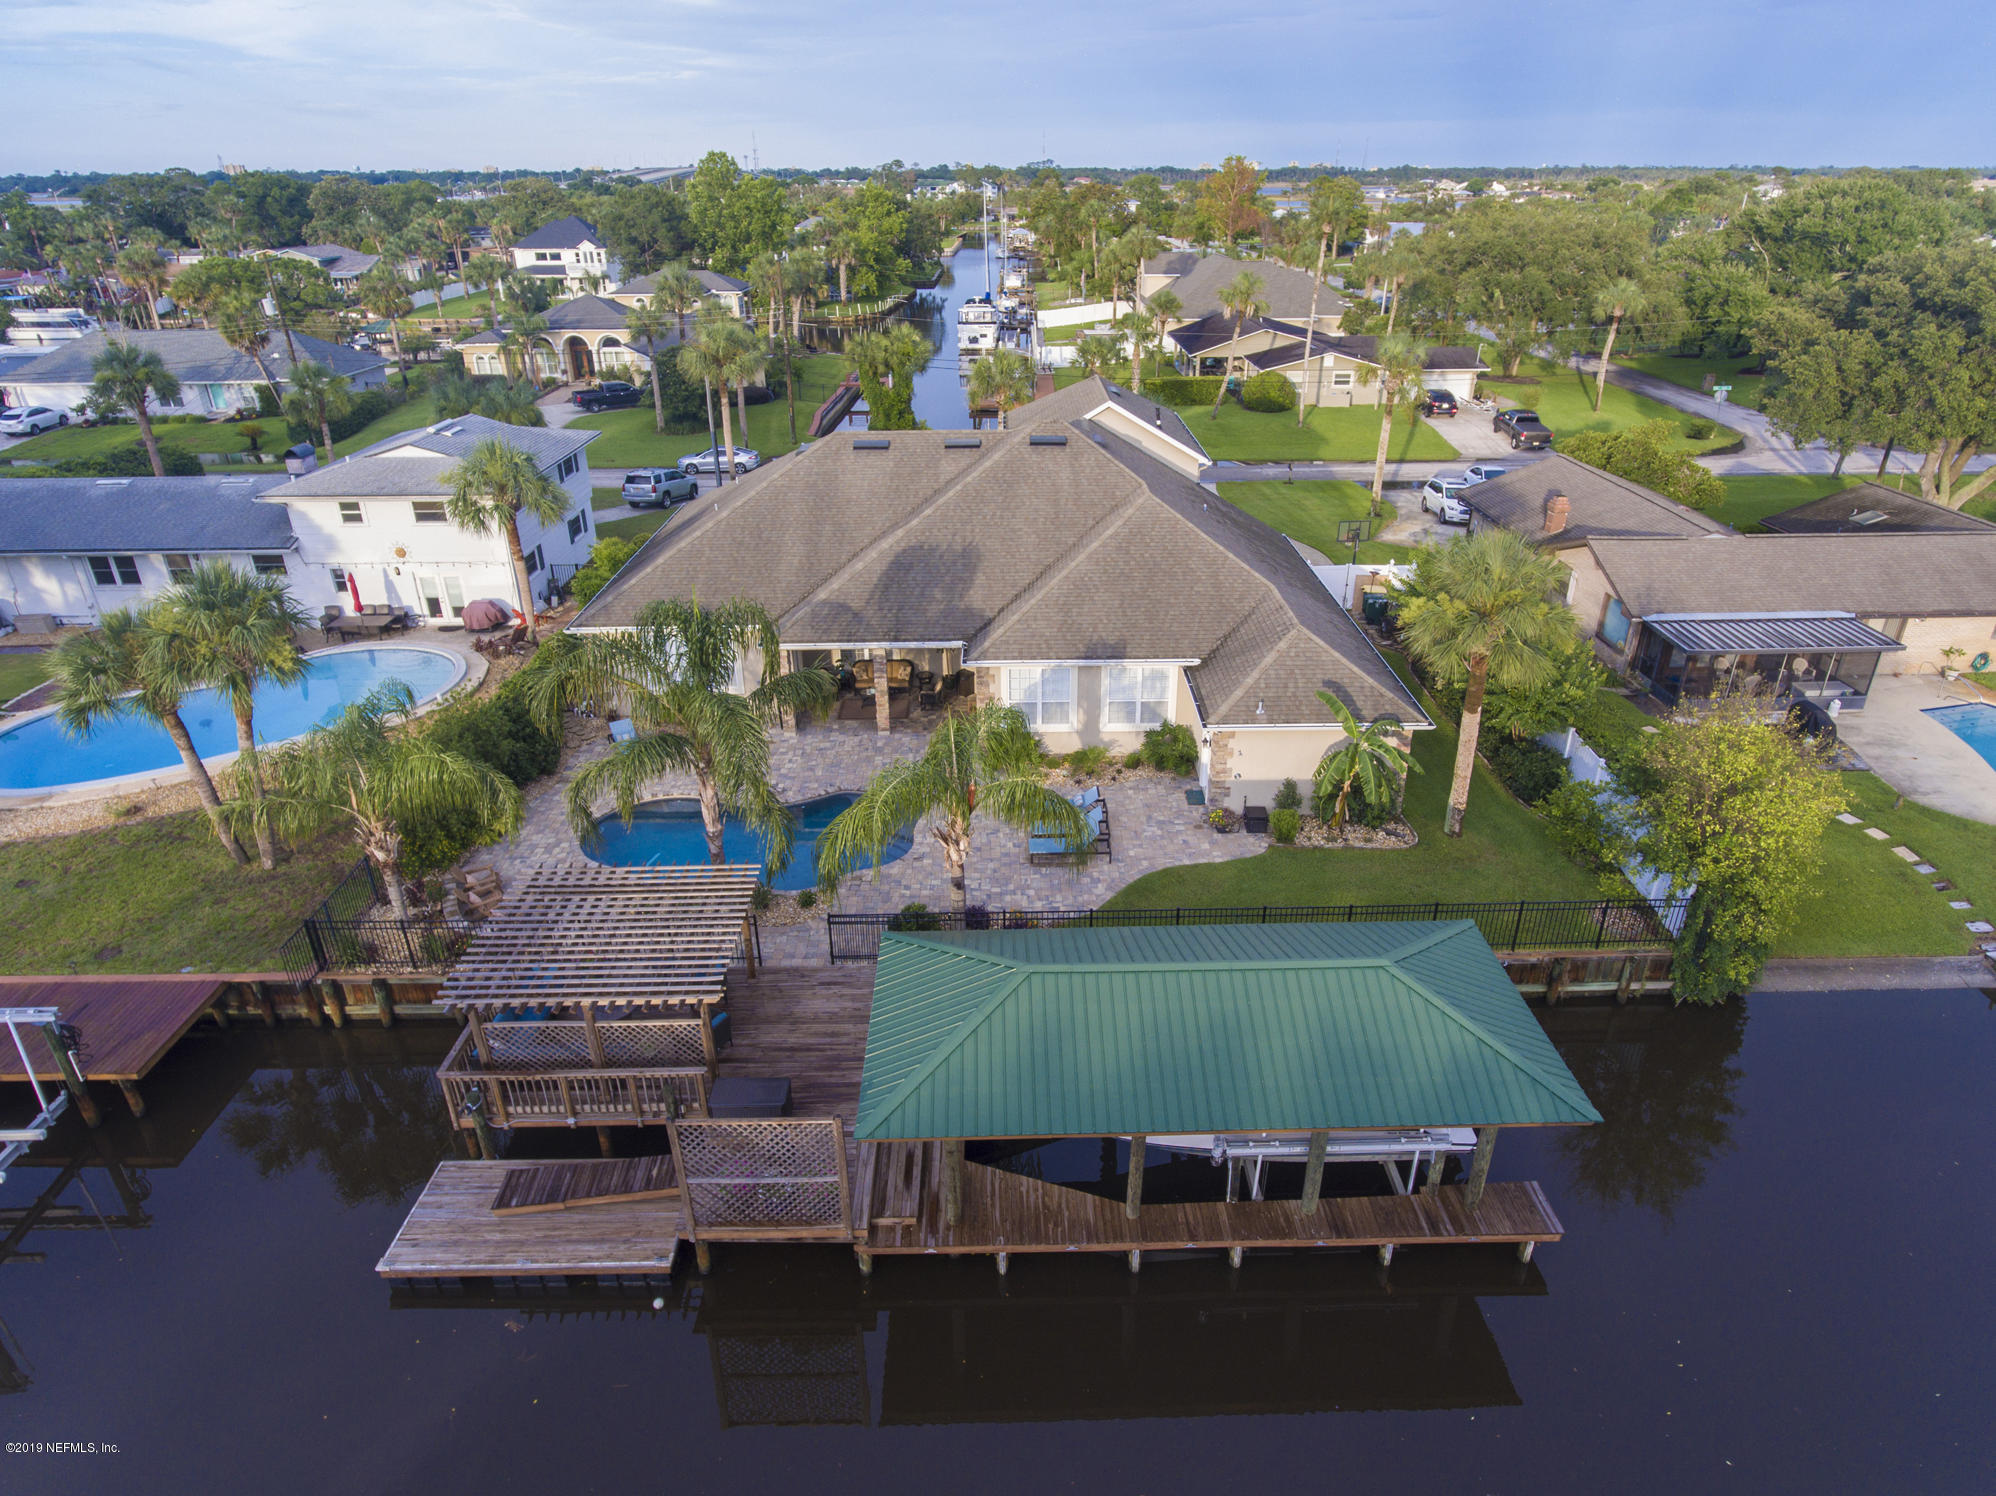 3406 PALM ISLAND, JACKSONVILLE, FLORIDA 32250, 4 Bedrooms Bedrooms, ,4 BathroomsBathrooms,Residential - single family,For sale,PALM ISLAND,976448